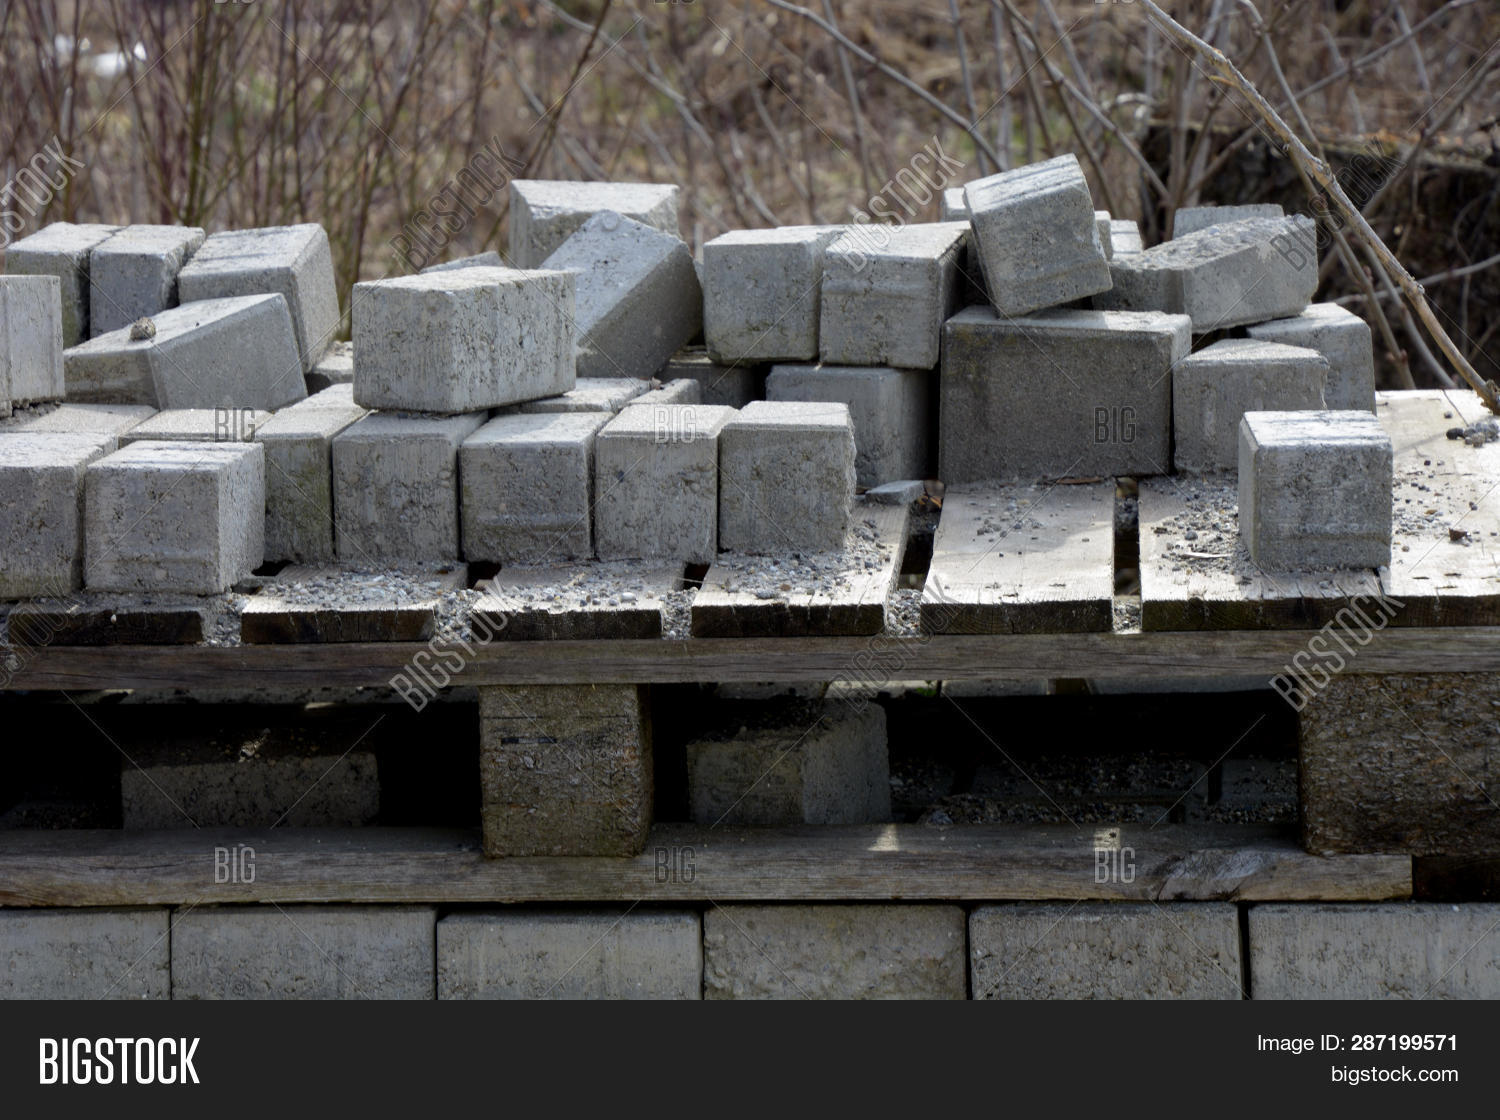 Pile Gray Cement Image & Photo (Free Trial) | Bigstock